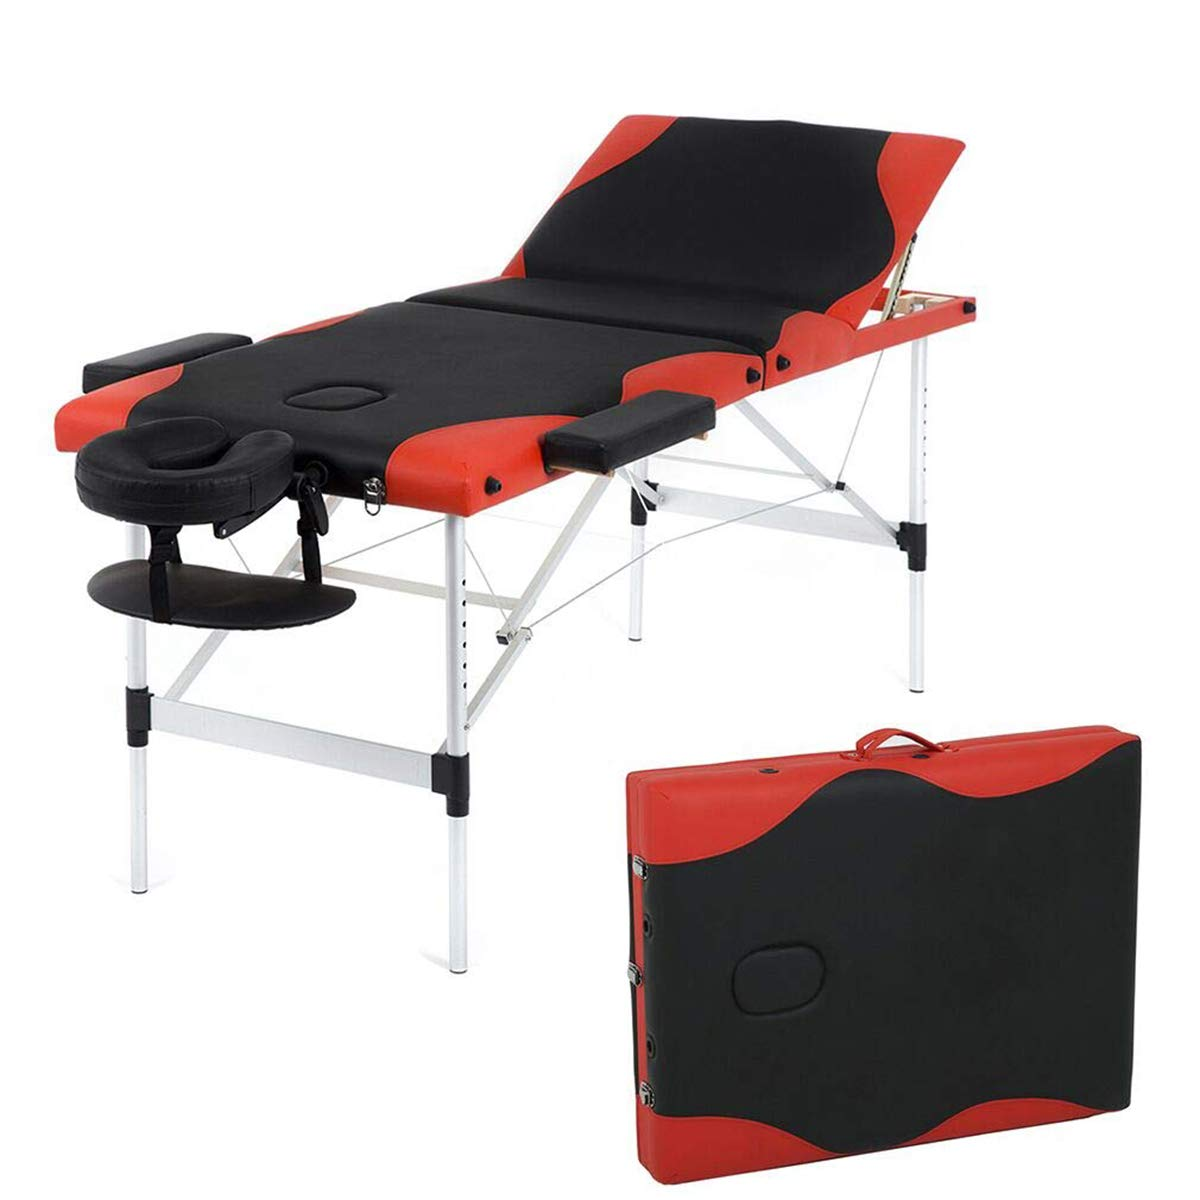 CYQAQ Massage Table Massage Bed Spa Be Height Adjustable 3 Fold Aluminium Portable Facial Salon Tattoo Bed by CYQAQ